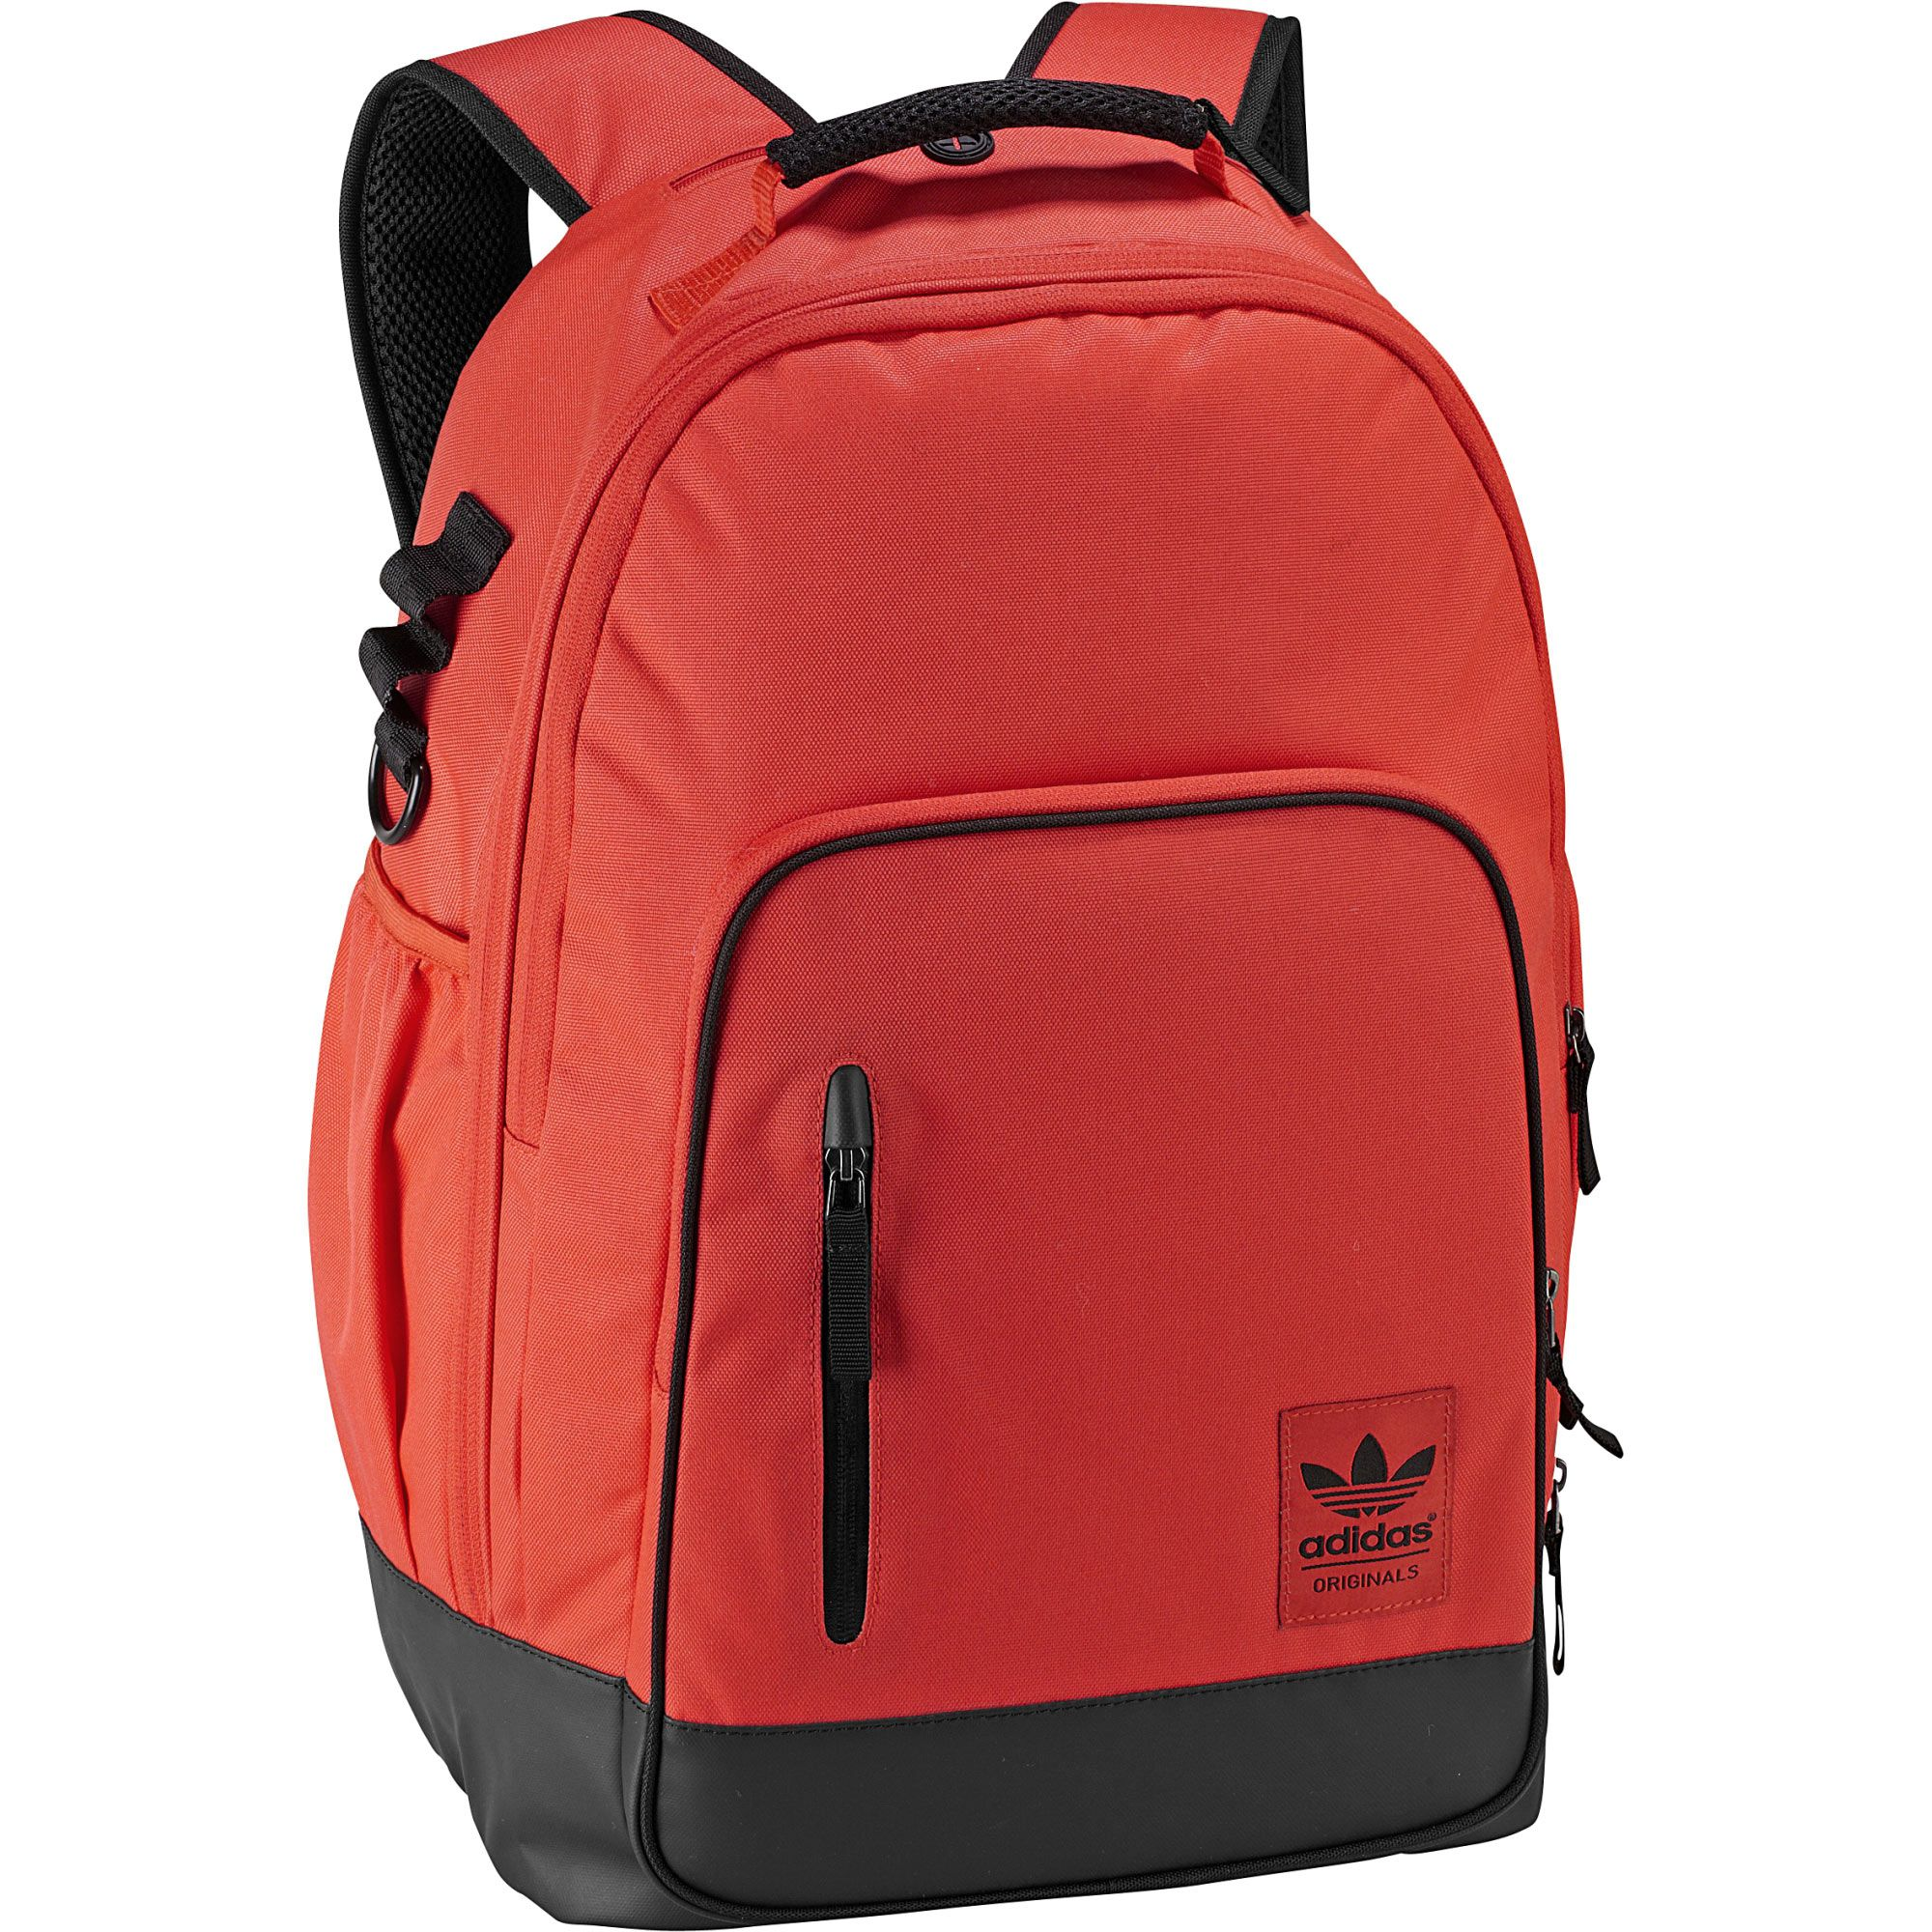 adidas campus backpack plus adidas uk accessories pinterest